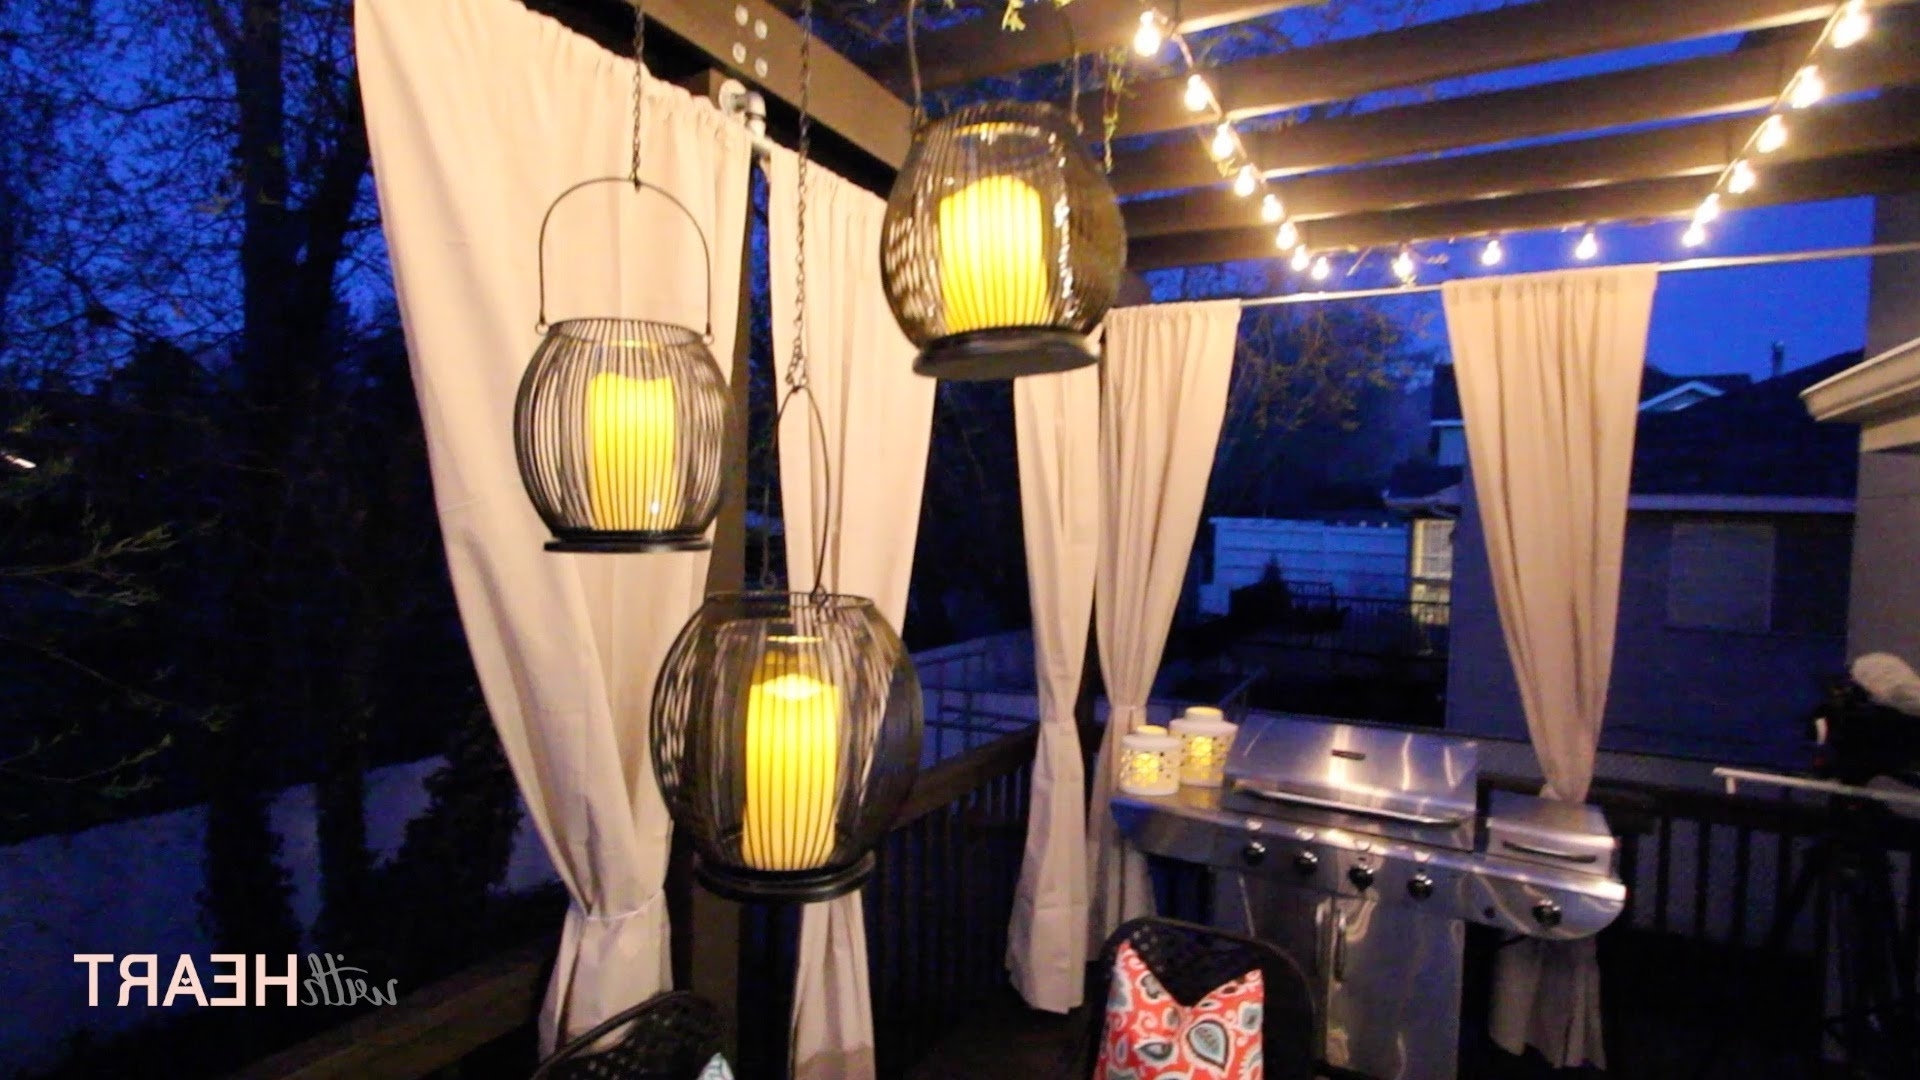 Outdoor Hanging Lights On String In Widely Used Outdoor String Lights And Hanging Lanterns (View 10 of 20)